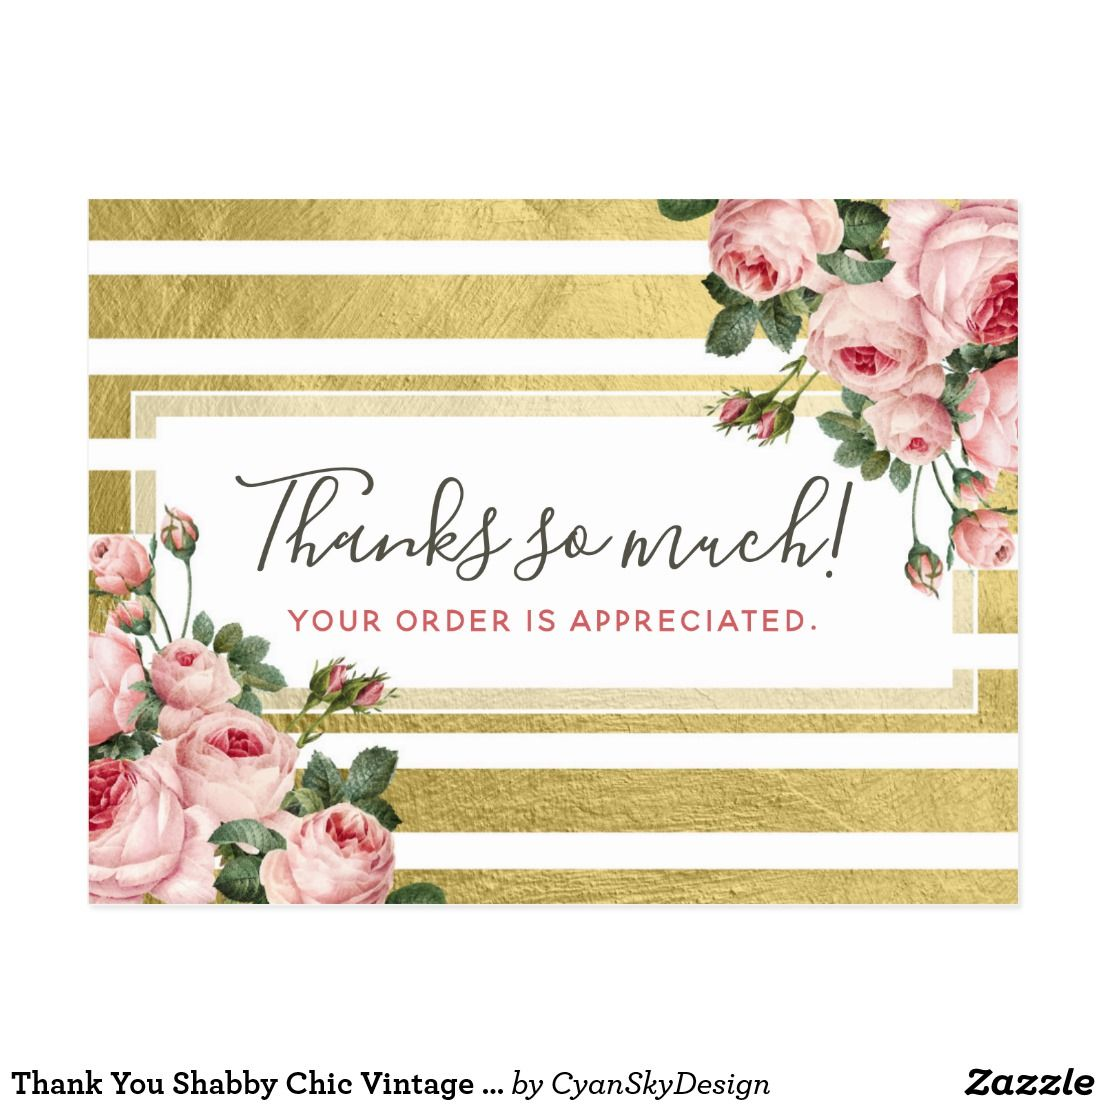 Thank You Shabby Chic Vintage Roses & Gold Card